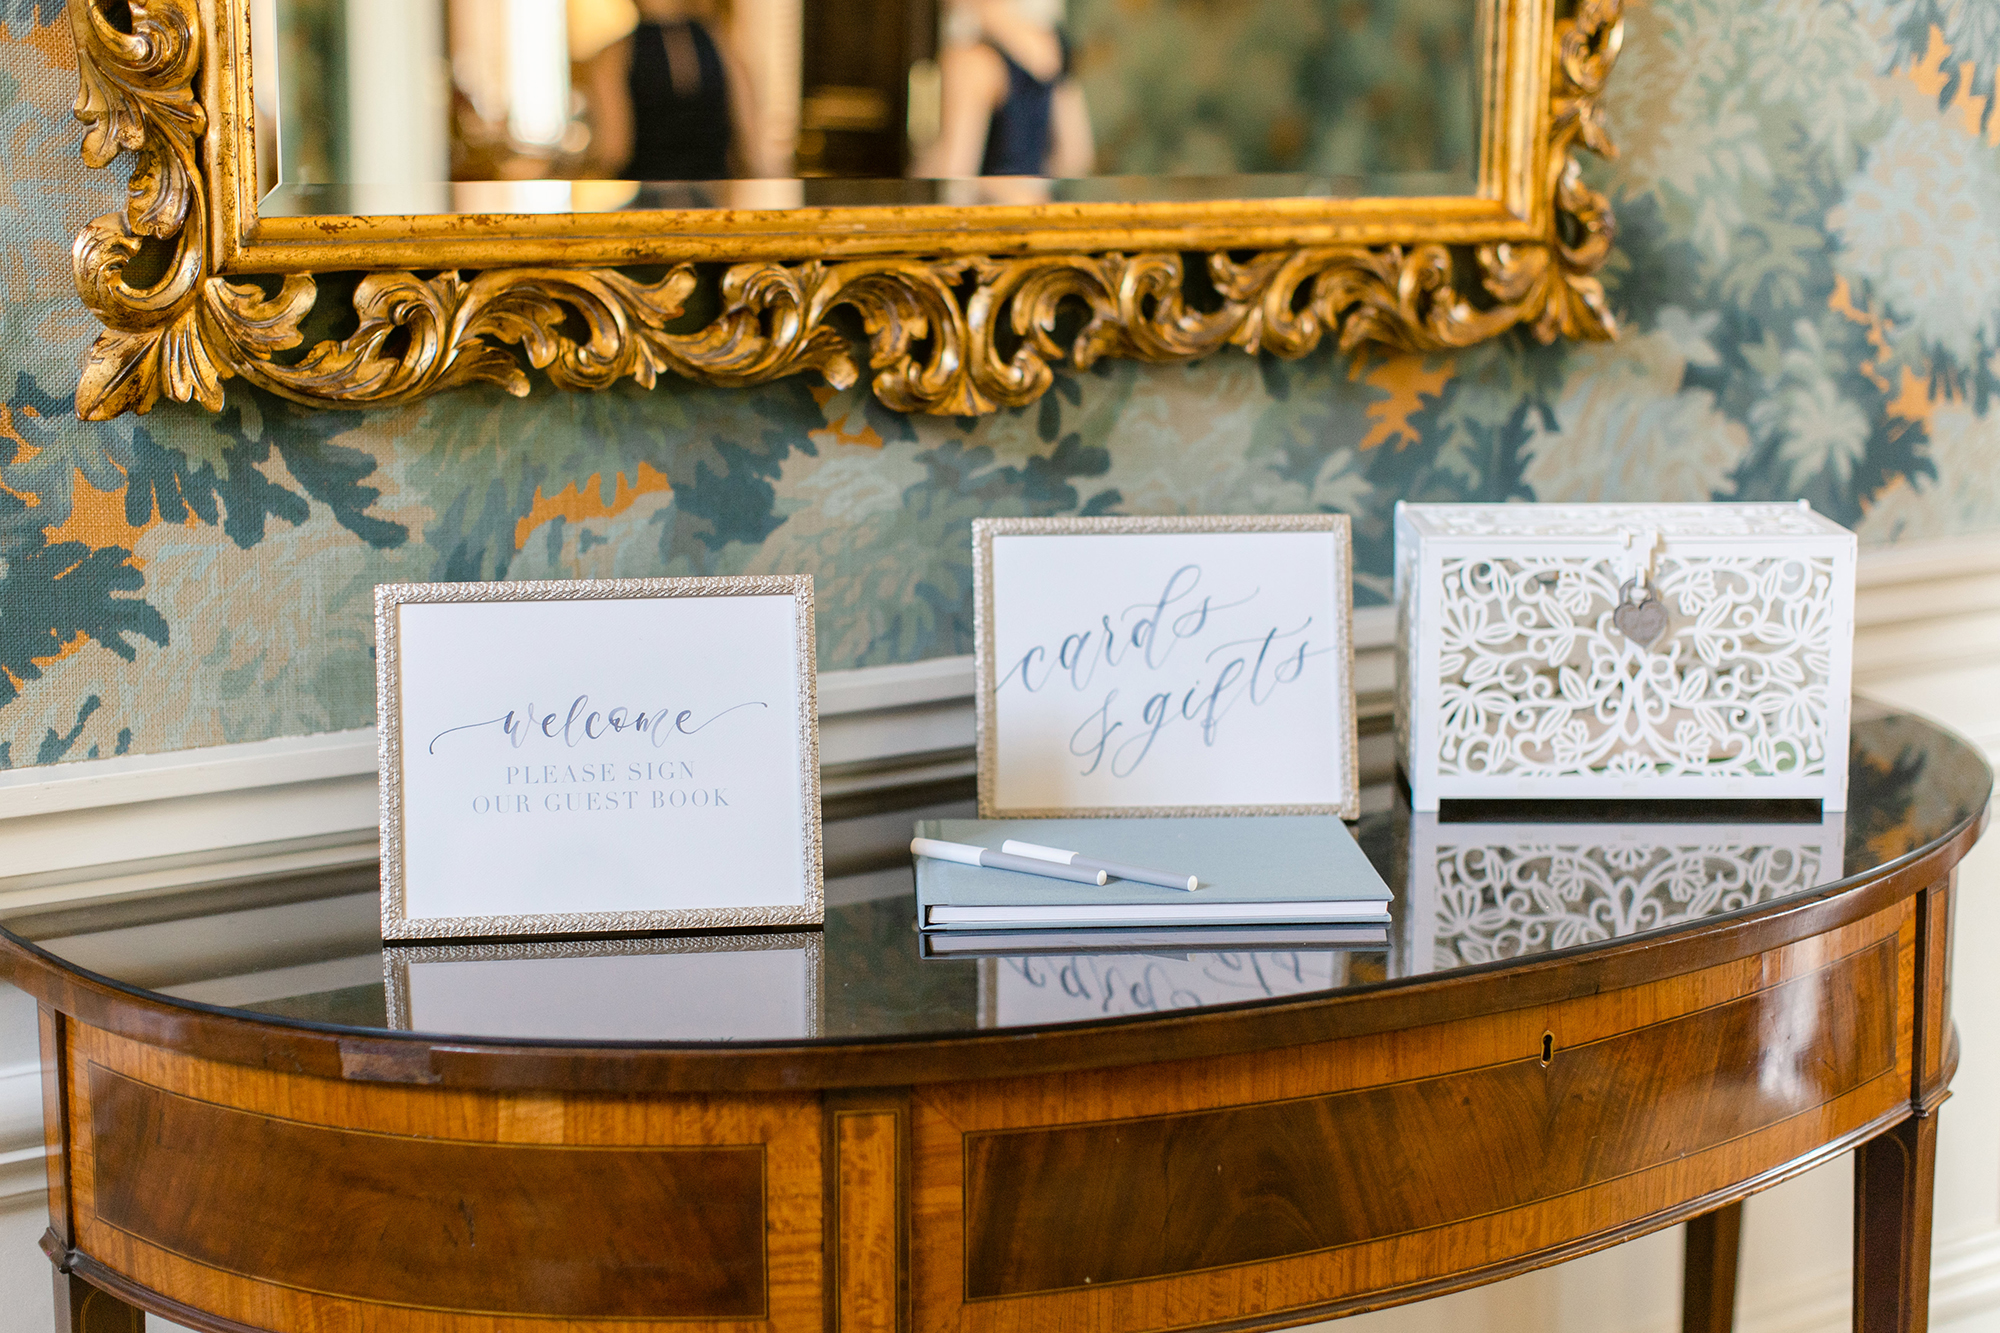 Sam Allen Creates Welcome and Cards and Gift Signs – Katie+Mark-Wedding-Lauren Kearns Photography